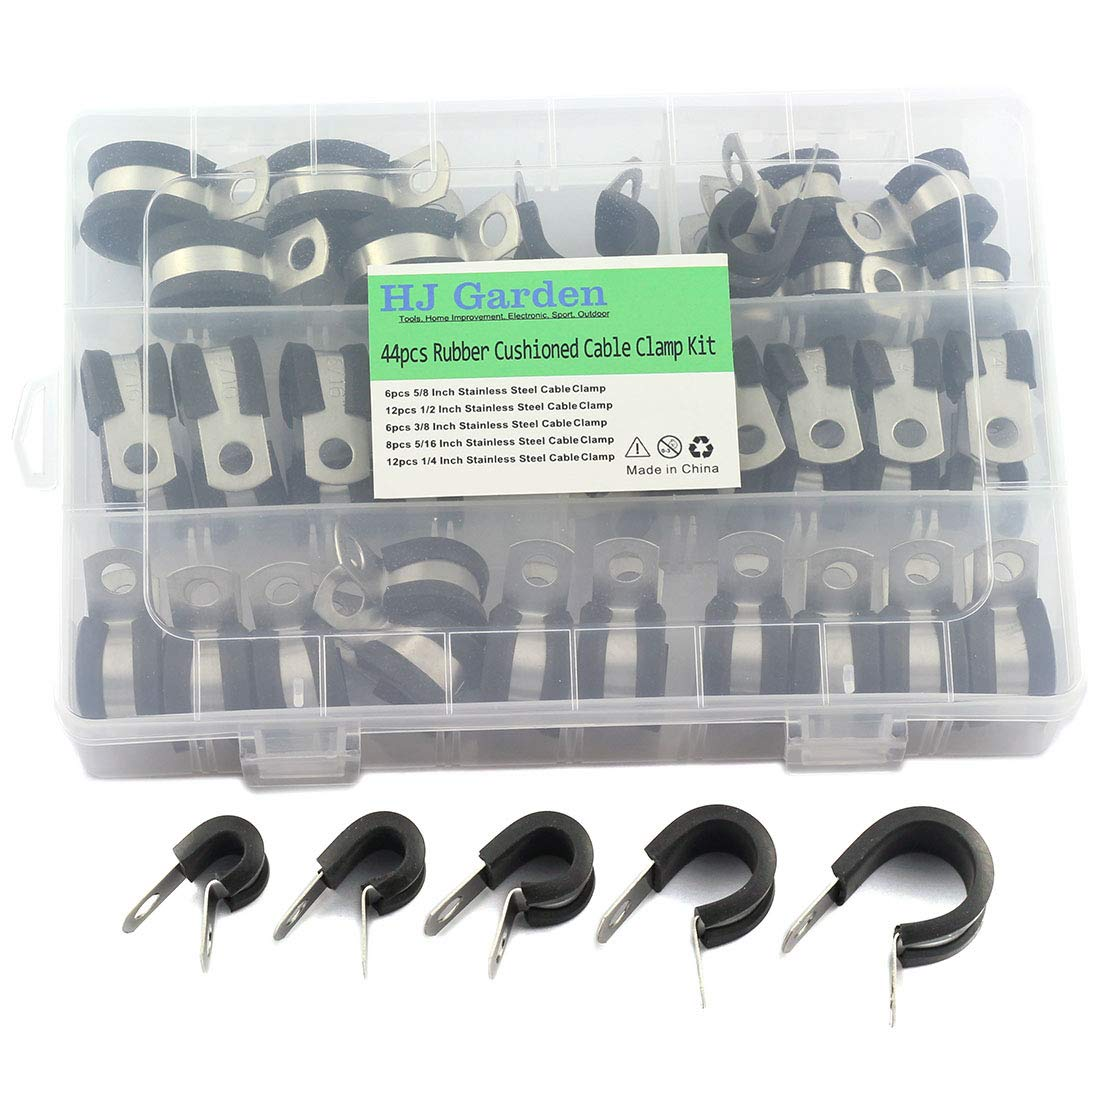 HJ Garden 44pcs Rubber Cushioned Cable Clamp Assorted Kit 304 Stainless Steel Hose Clamp/R Shape Metal Clamp/Tube/Pipe/Wire Holder Fastener 5 Size - 5/8, 1/2, 3/8, 5/16, 1/4 inch